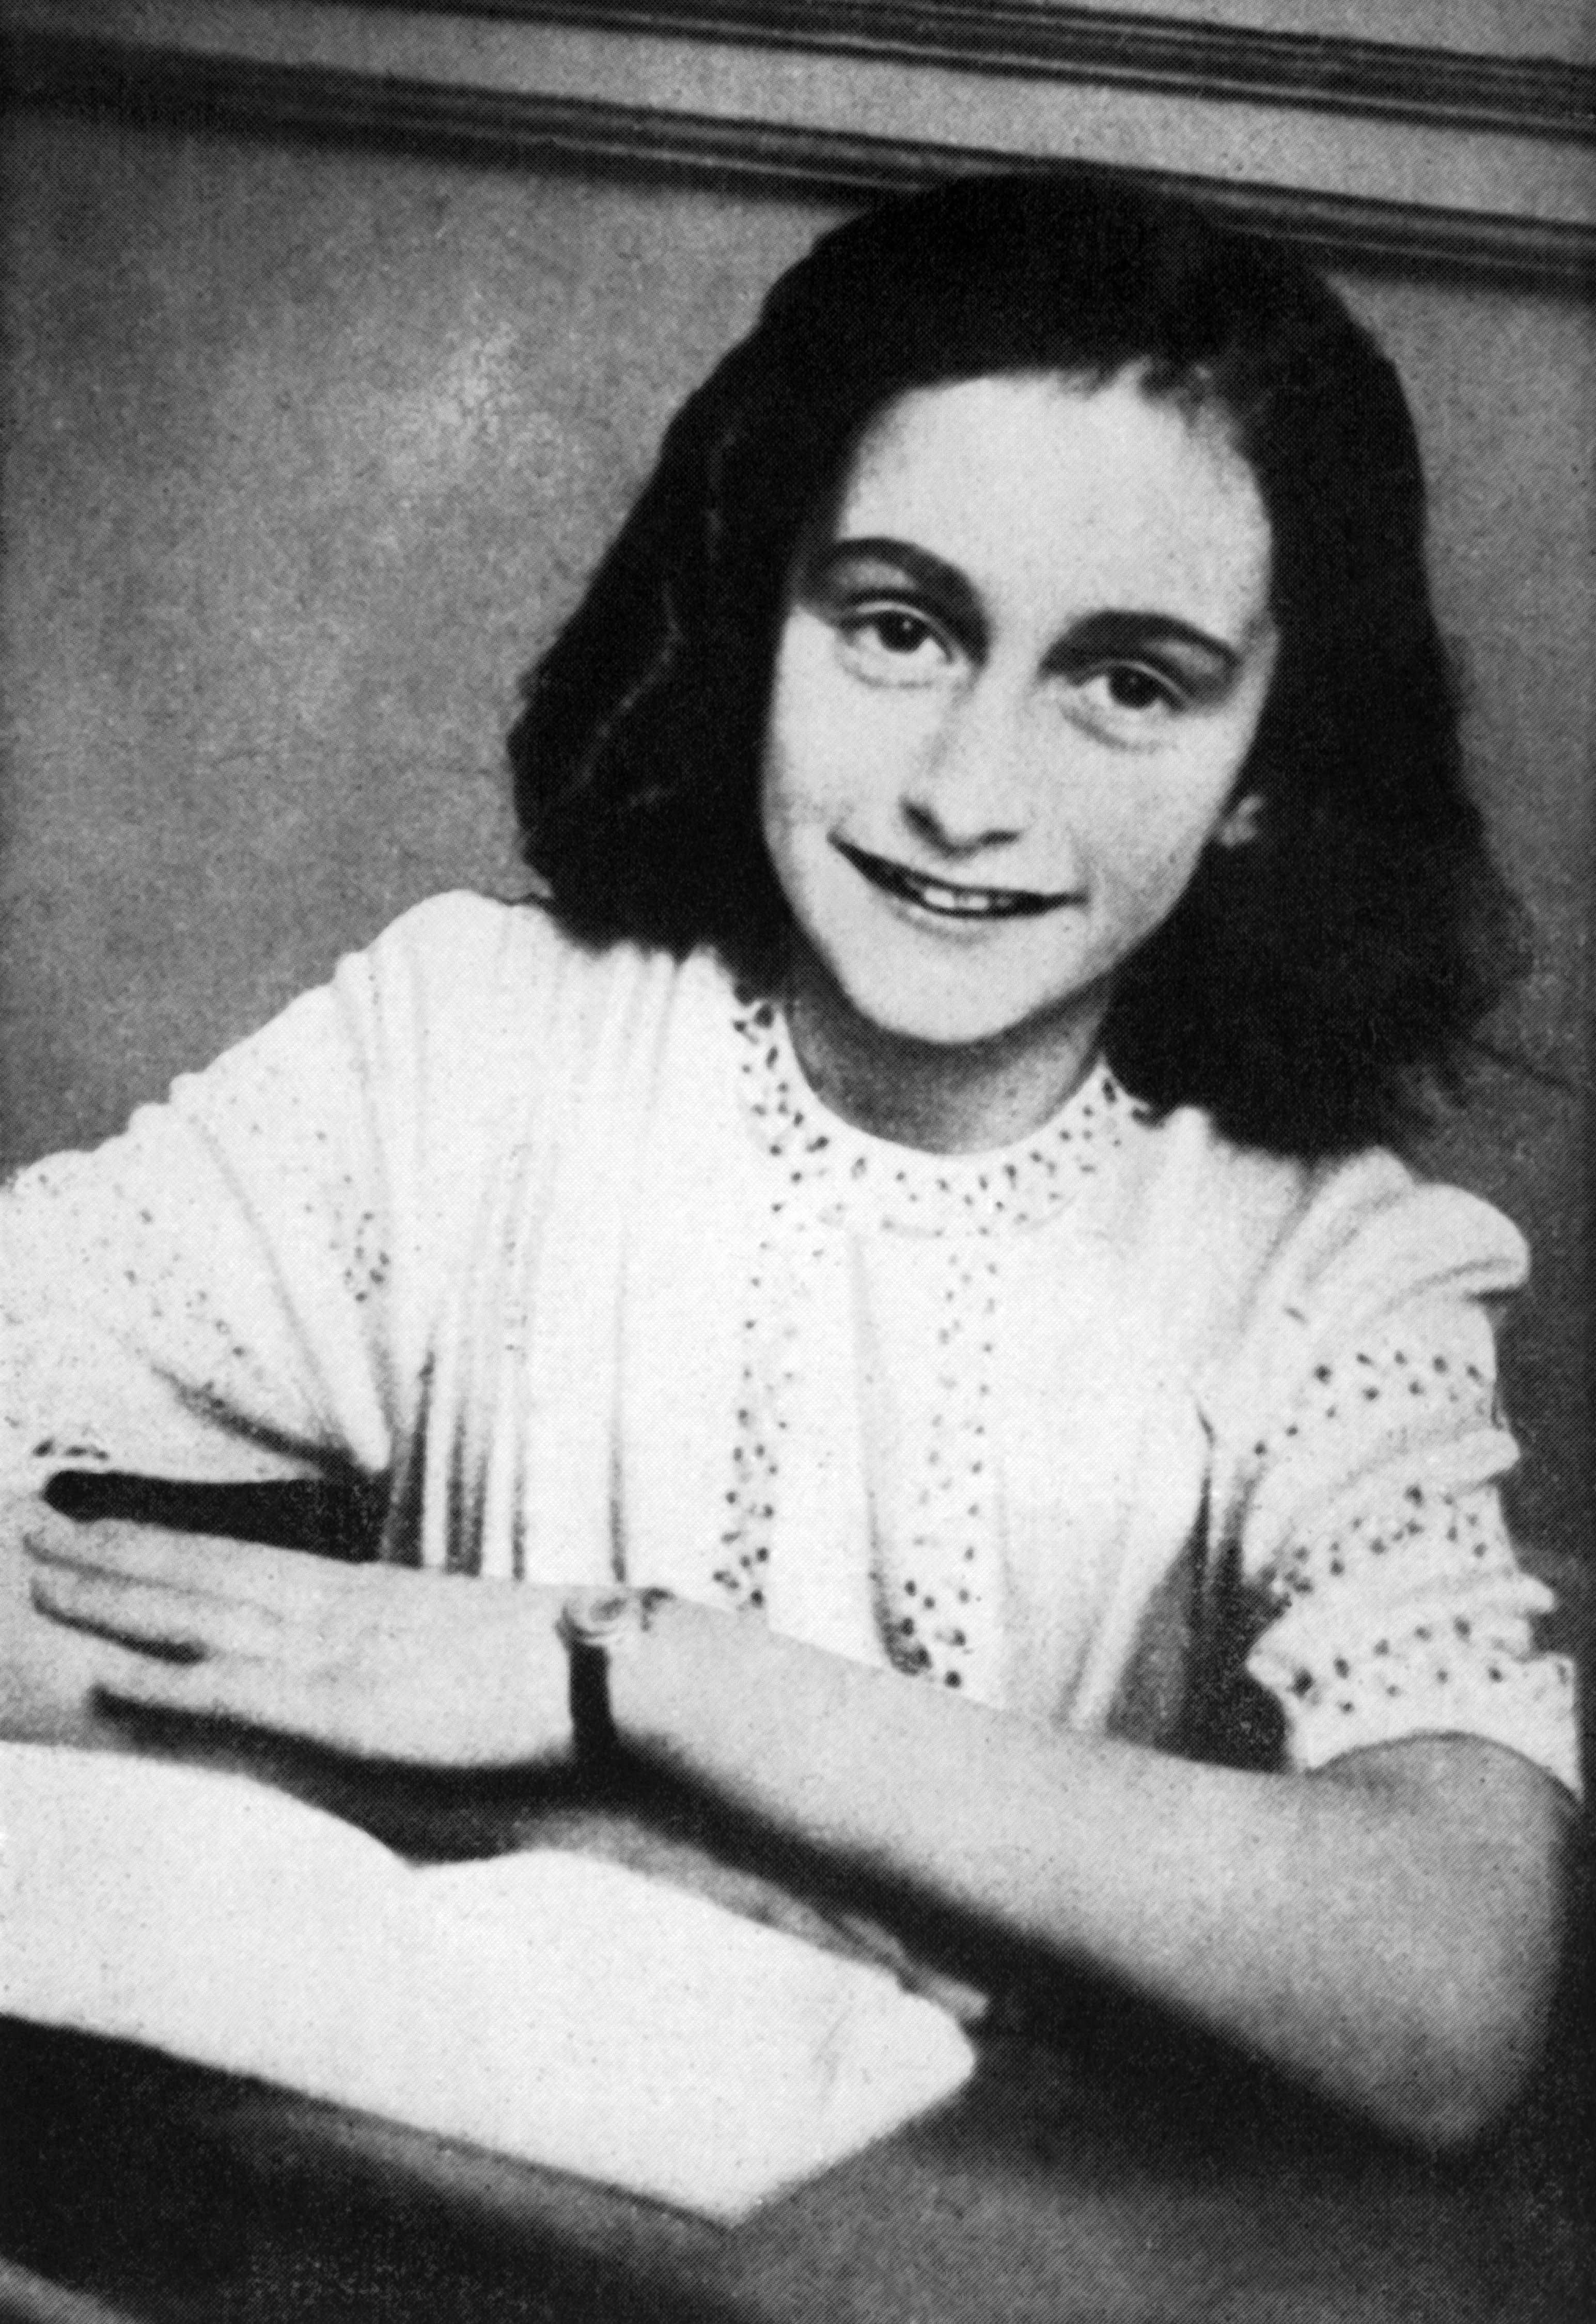 Anne Frank Face Tattoo : frank, tattoo, Rapper, Tattoo, Frank, FACE…, Because, 'dying', Music